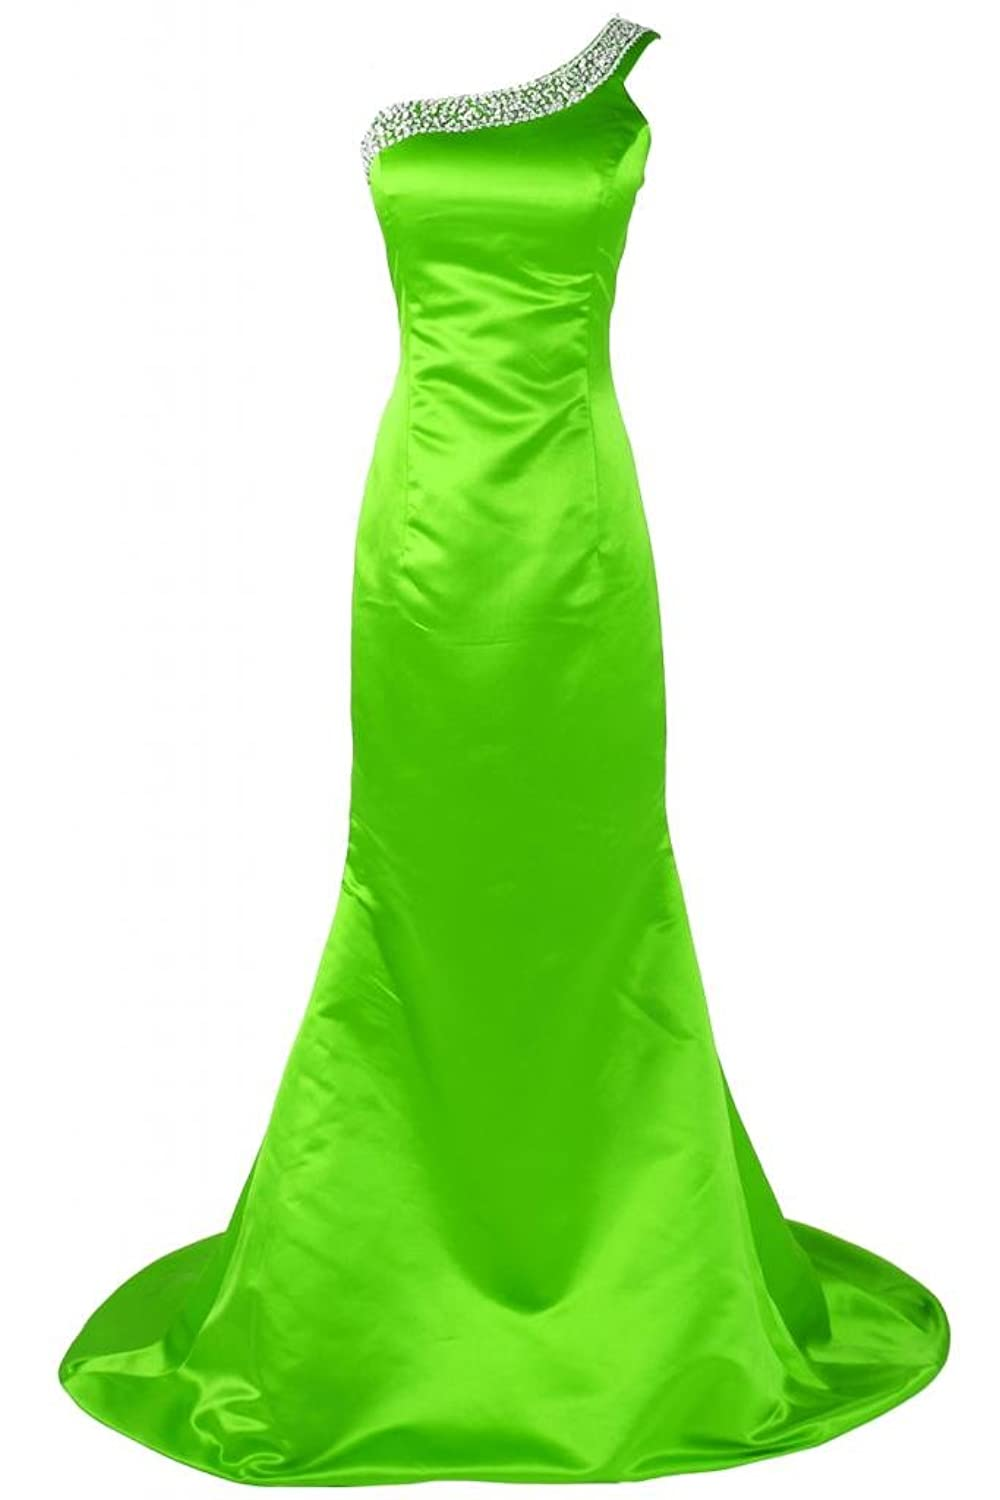 Sunvary Charming Satin Mermaid Long Evening Pageant Dress Prom Dress